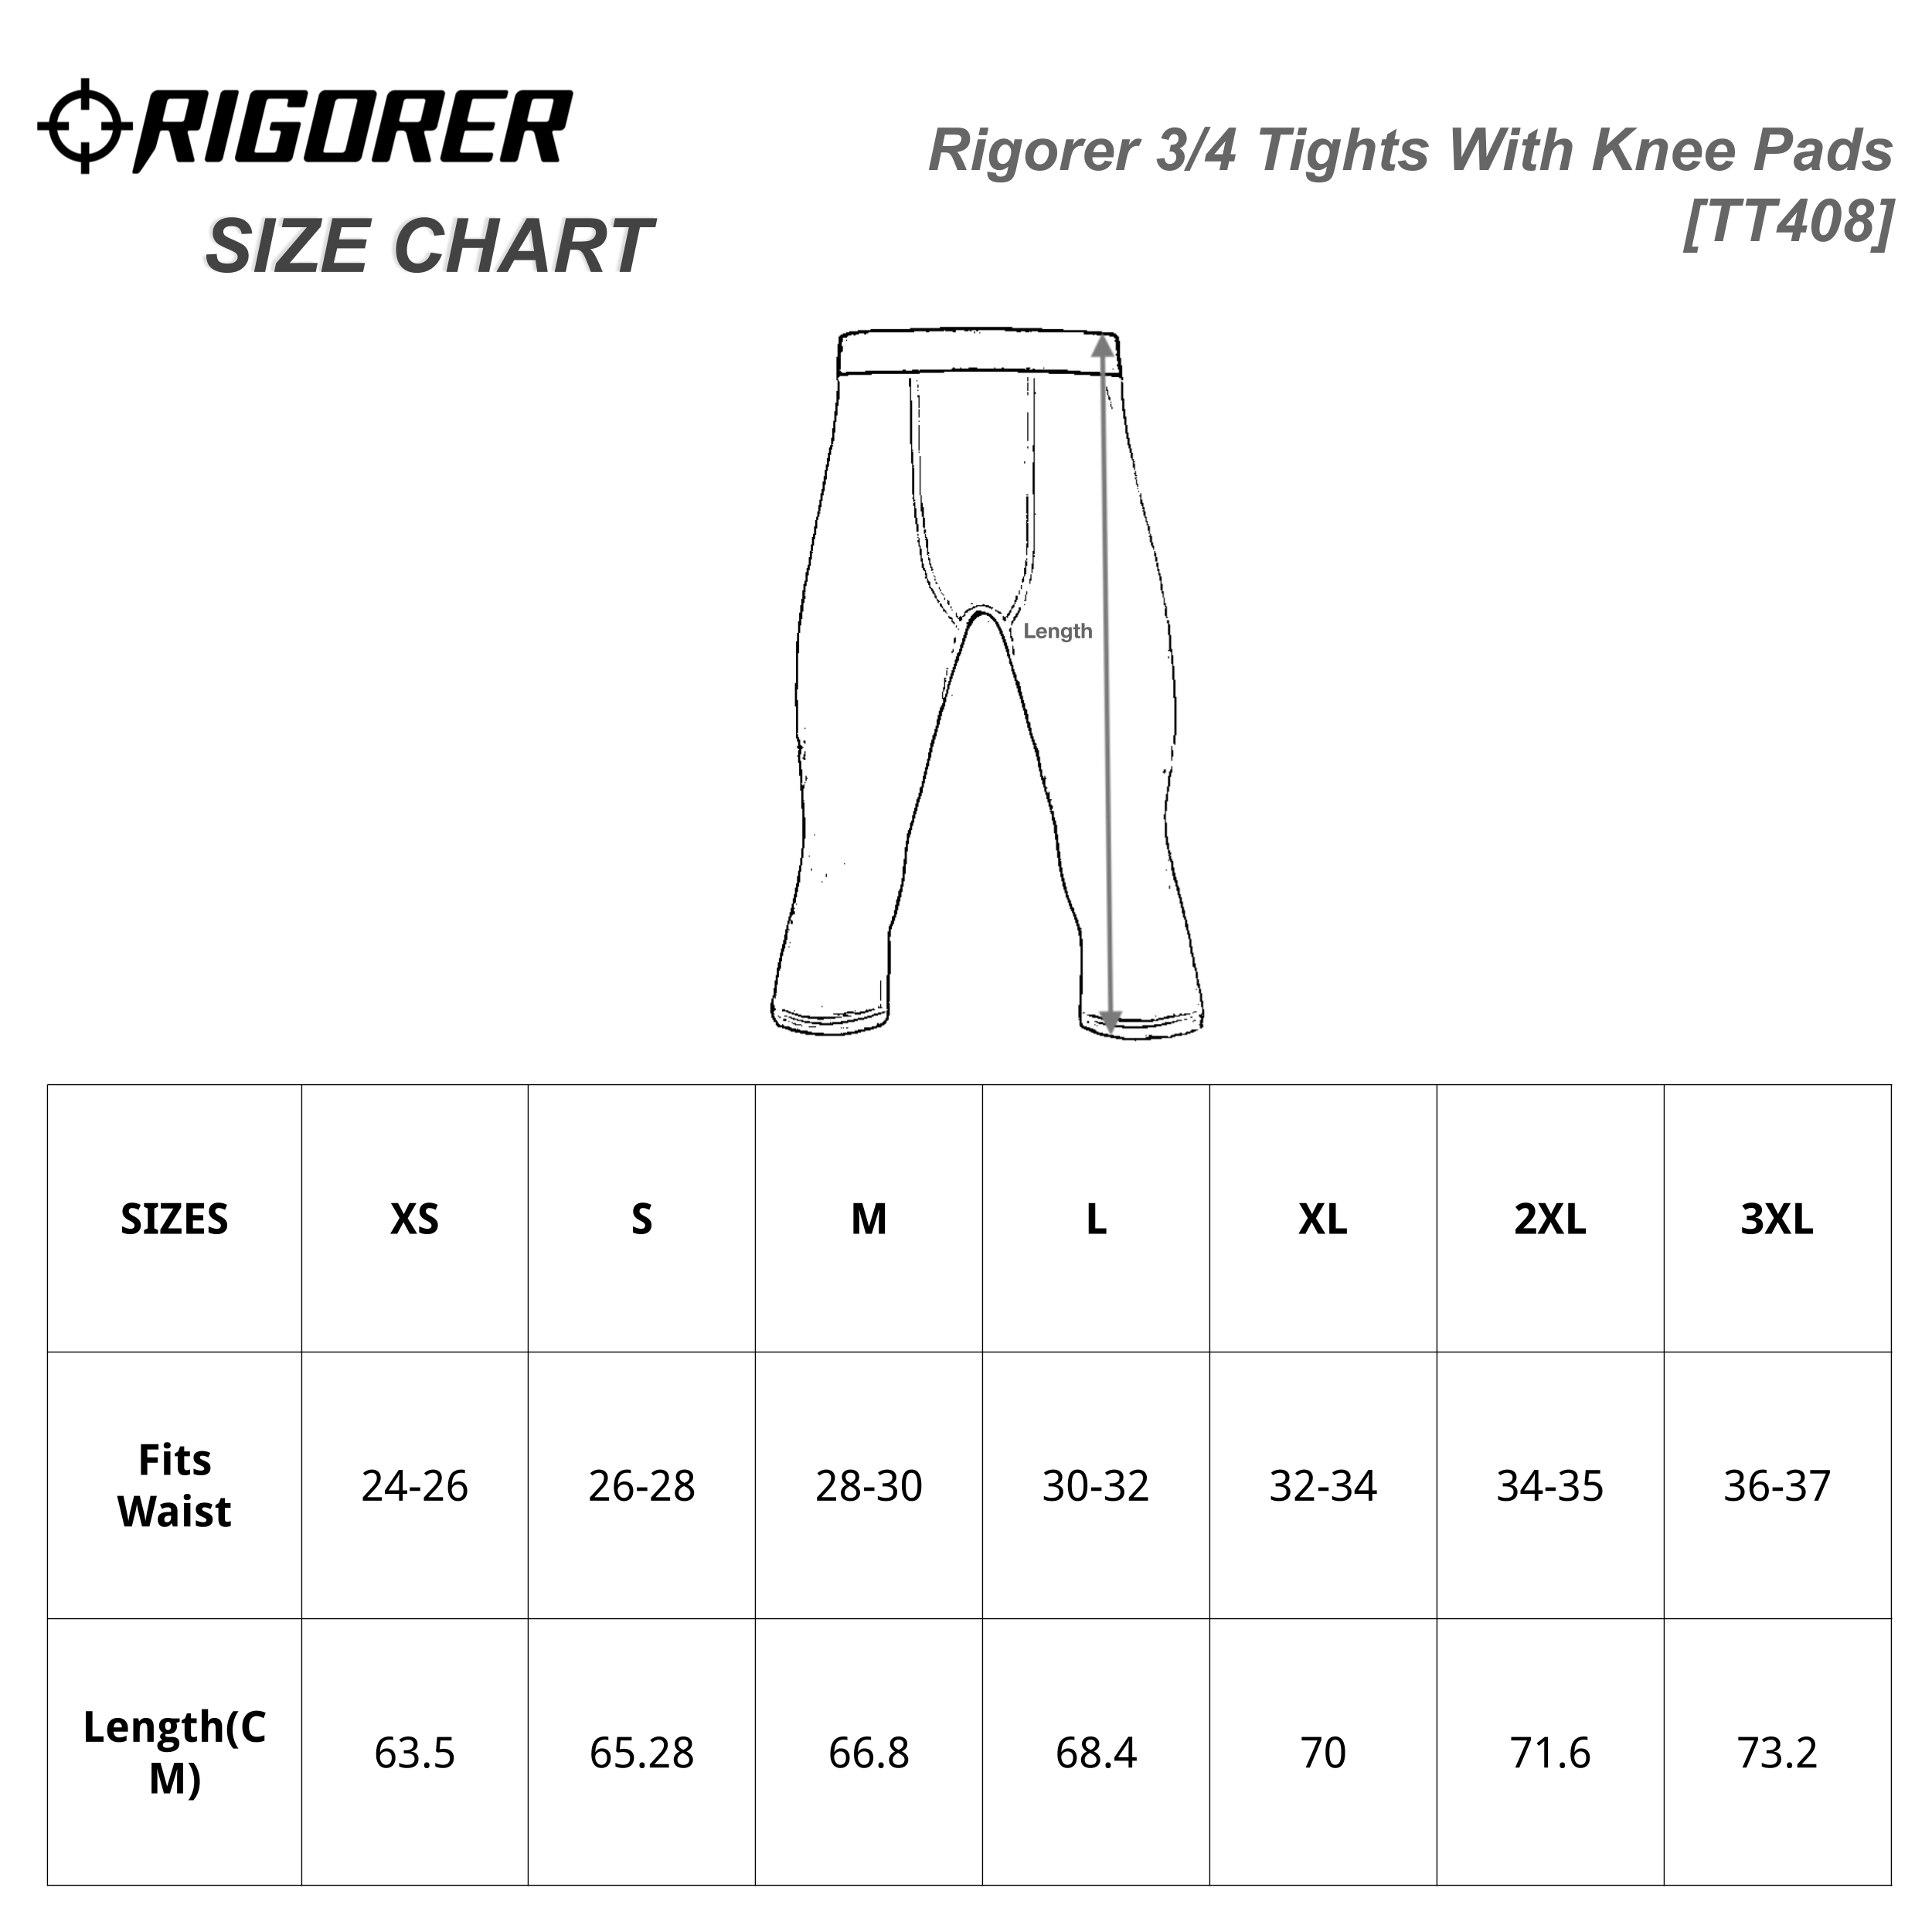 Rigorer 3/4 Tights With Knee Pads [TT408] Sizing Chart